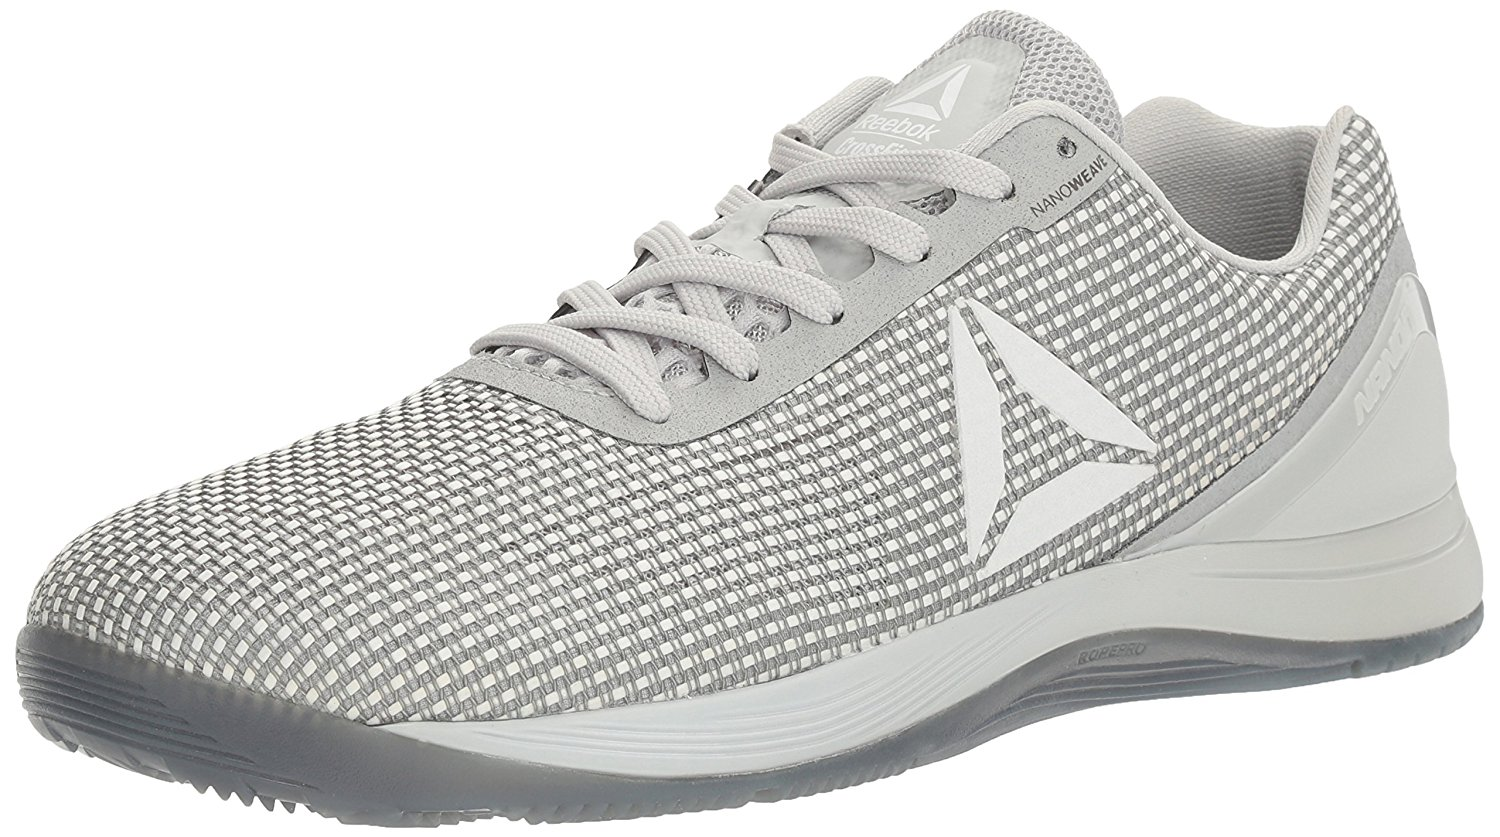 Amazon.com | Reebok Men's Crossfit Nano 7.0 Cross-Trainer Shoe, Skull Grey/White/Black, 7 M US | Fitness & Cross-Training